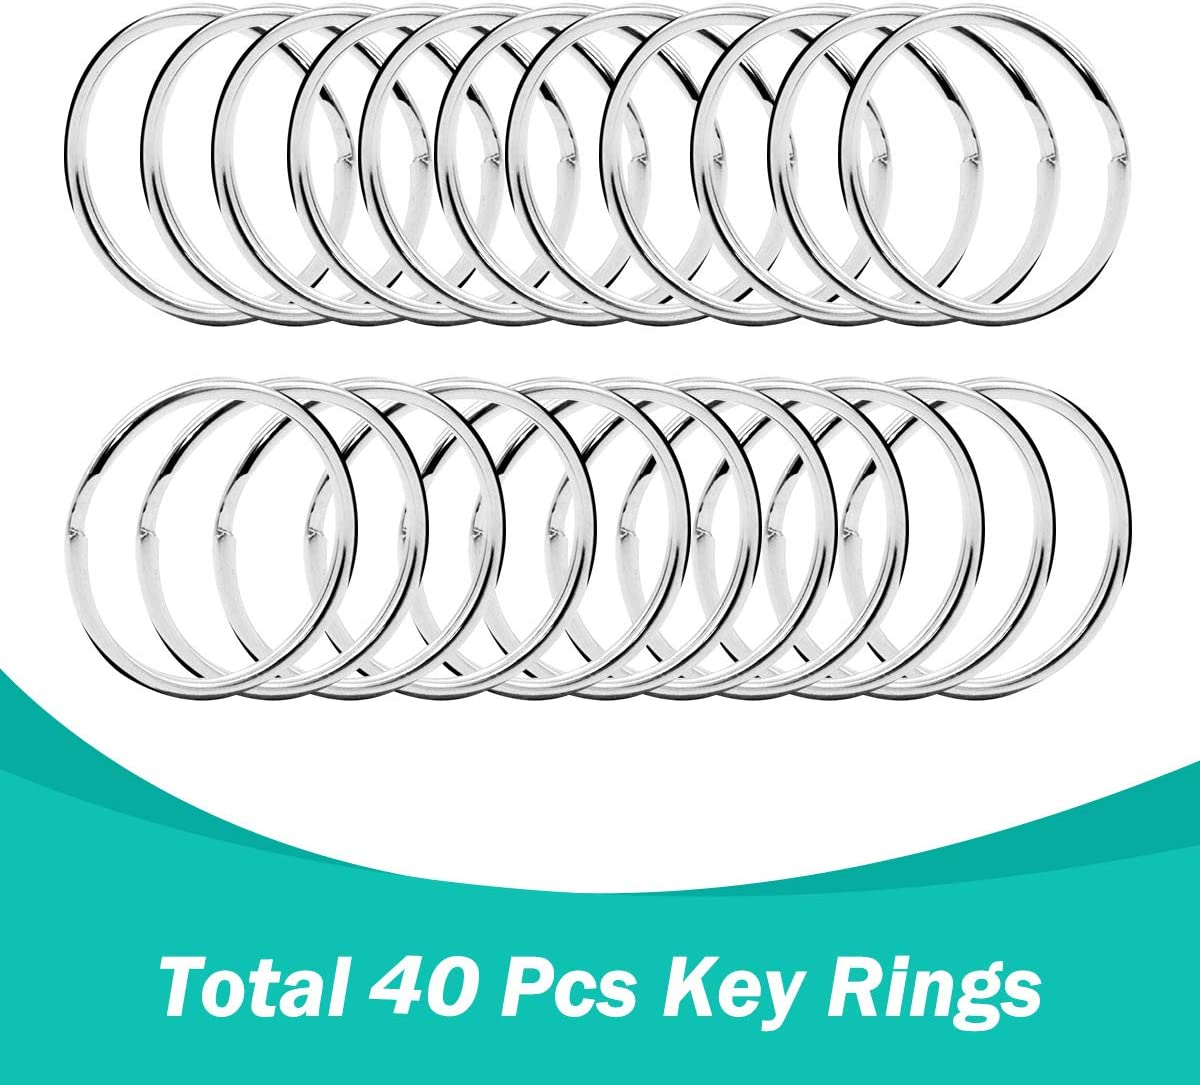 80 Pcs Premium Swivel Snap Hooks with Key Rings,Metal Lanyard Keychain Hooks Lobster Clasps for Key Jewelry DIY Crafts 40 Pcs Lanyard Snap Hooks+40 Pcs Key Rings